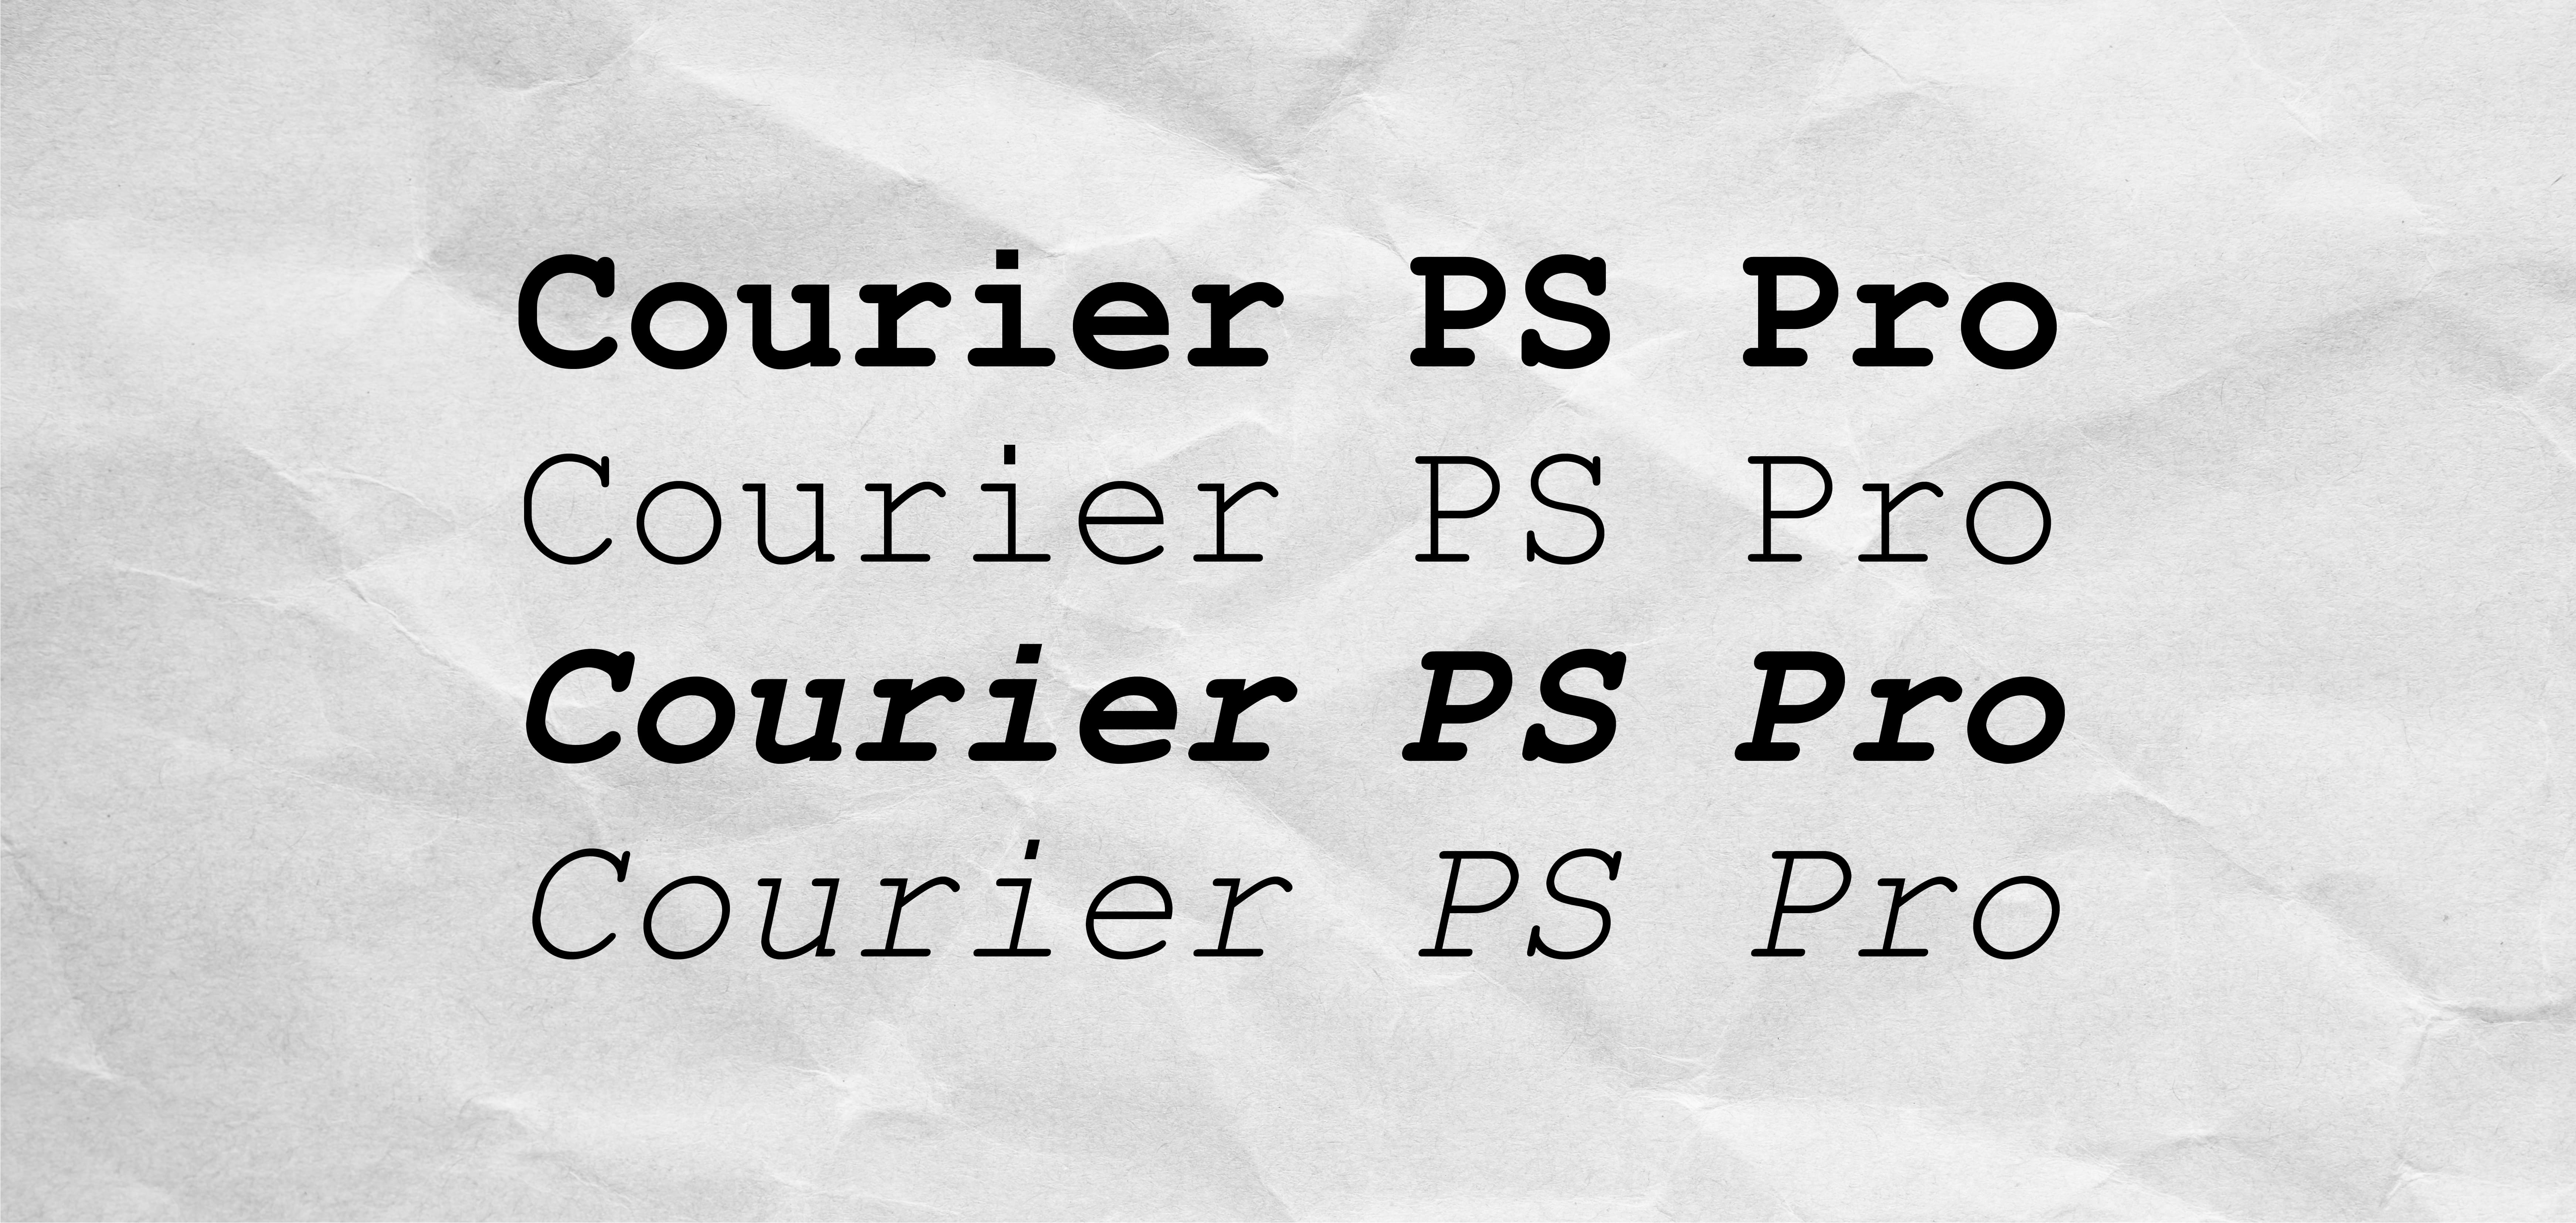 Courier PS Pro